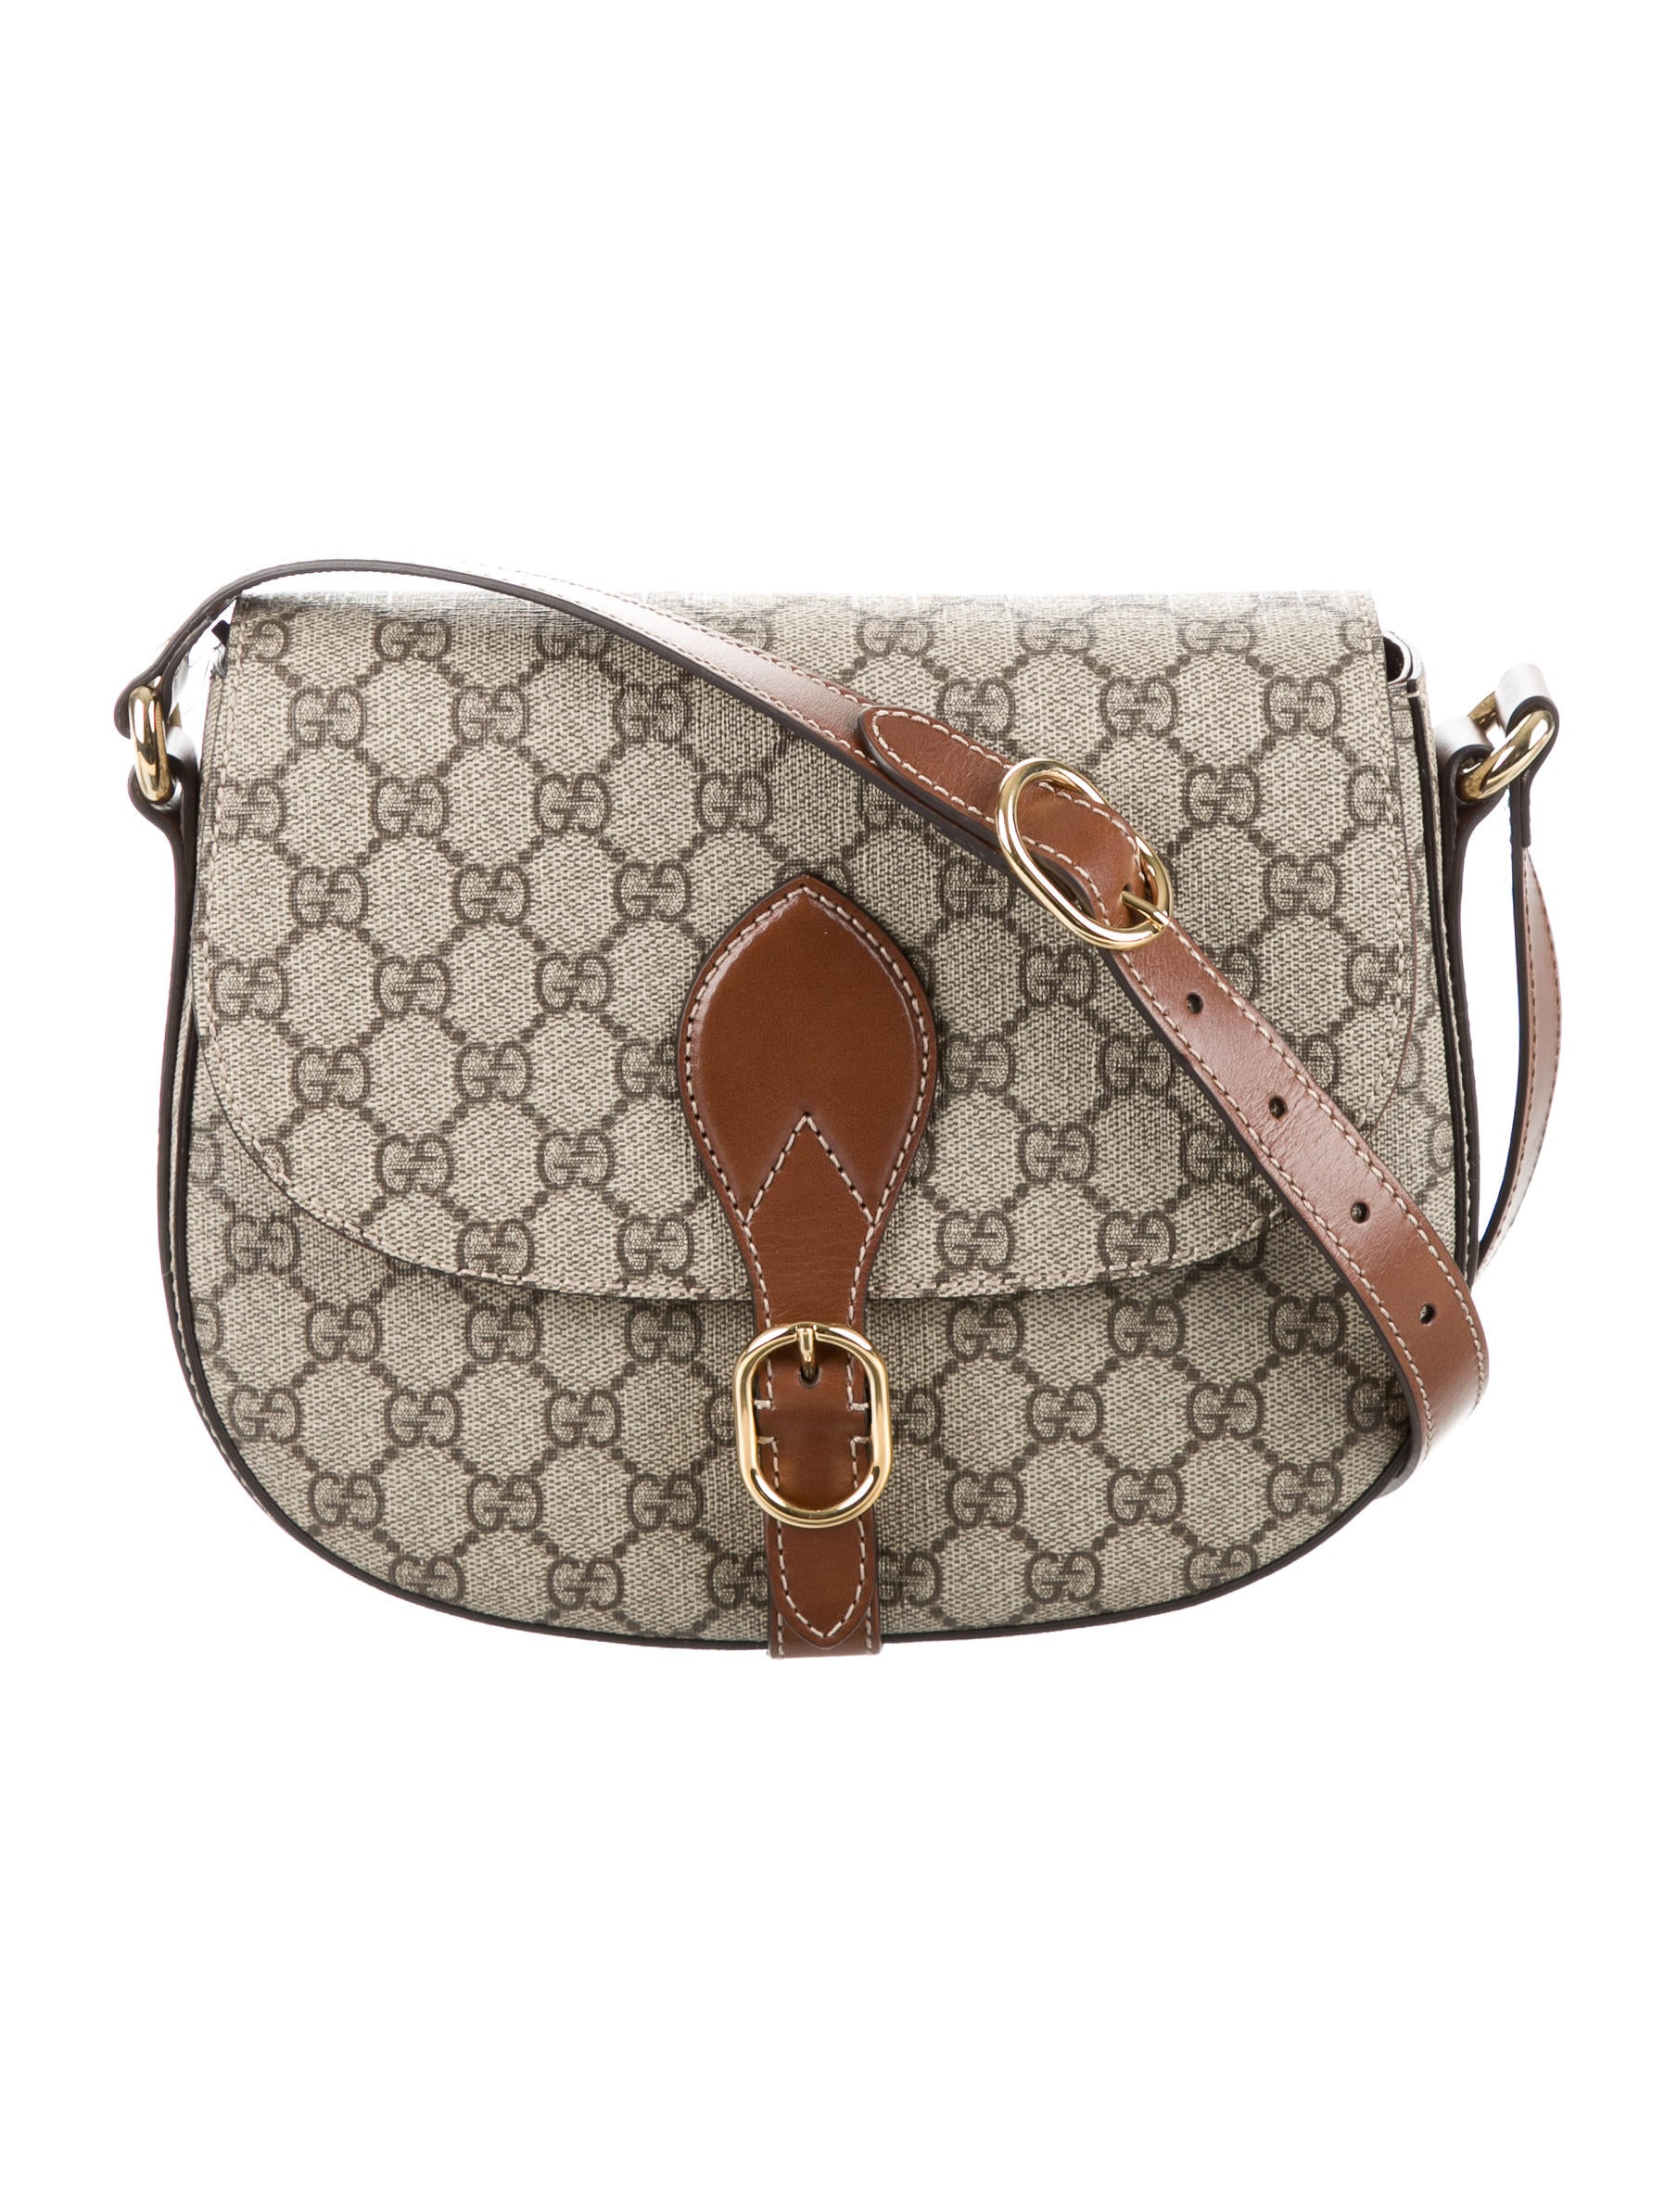 Original If The Fall 2017 Gucci Models Weren  Then They Were Toting Bags How Else Do You Expect Them To Introduce Us To The New It Accessories? These Snakeskin Cases And Work Totes Will Soon Be On The Arms Of Men And Women Alike But